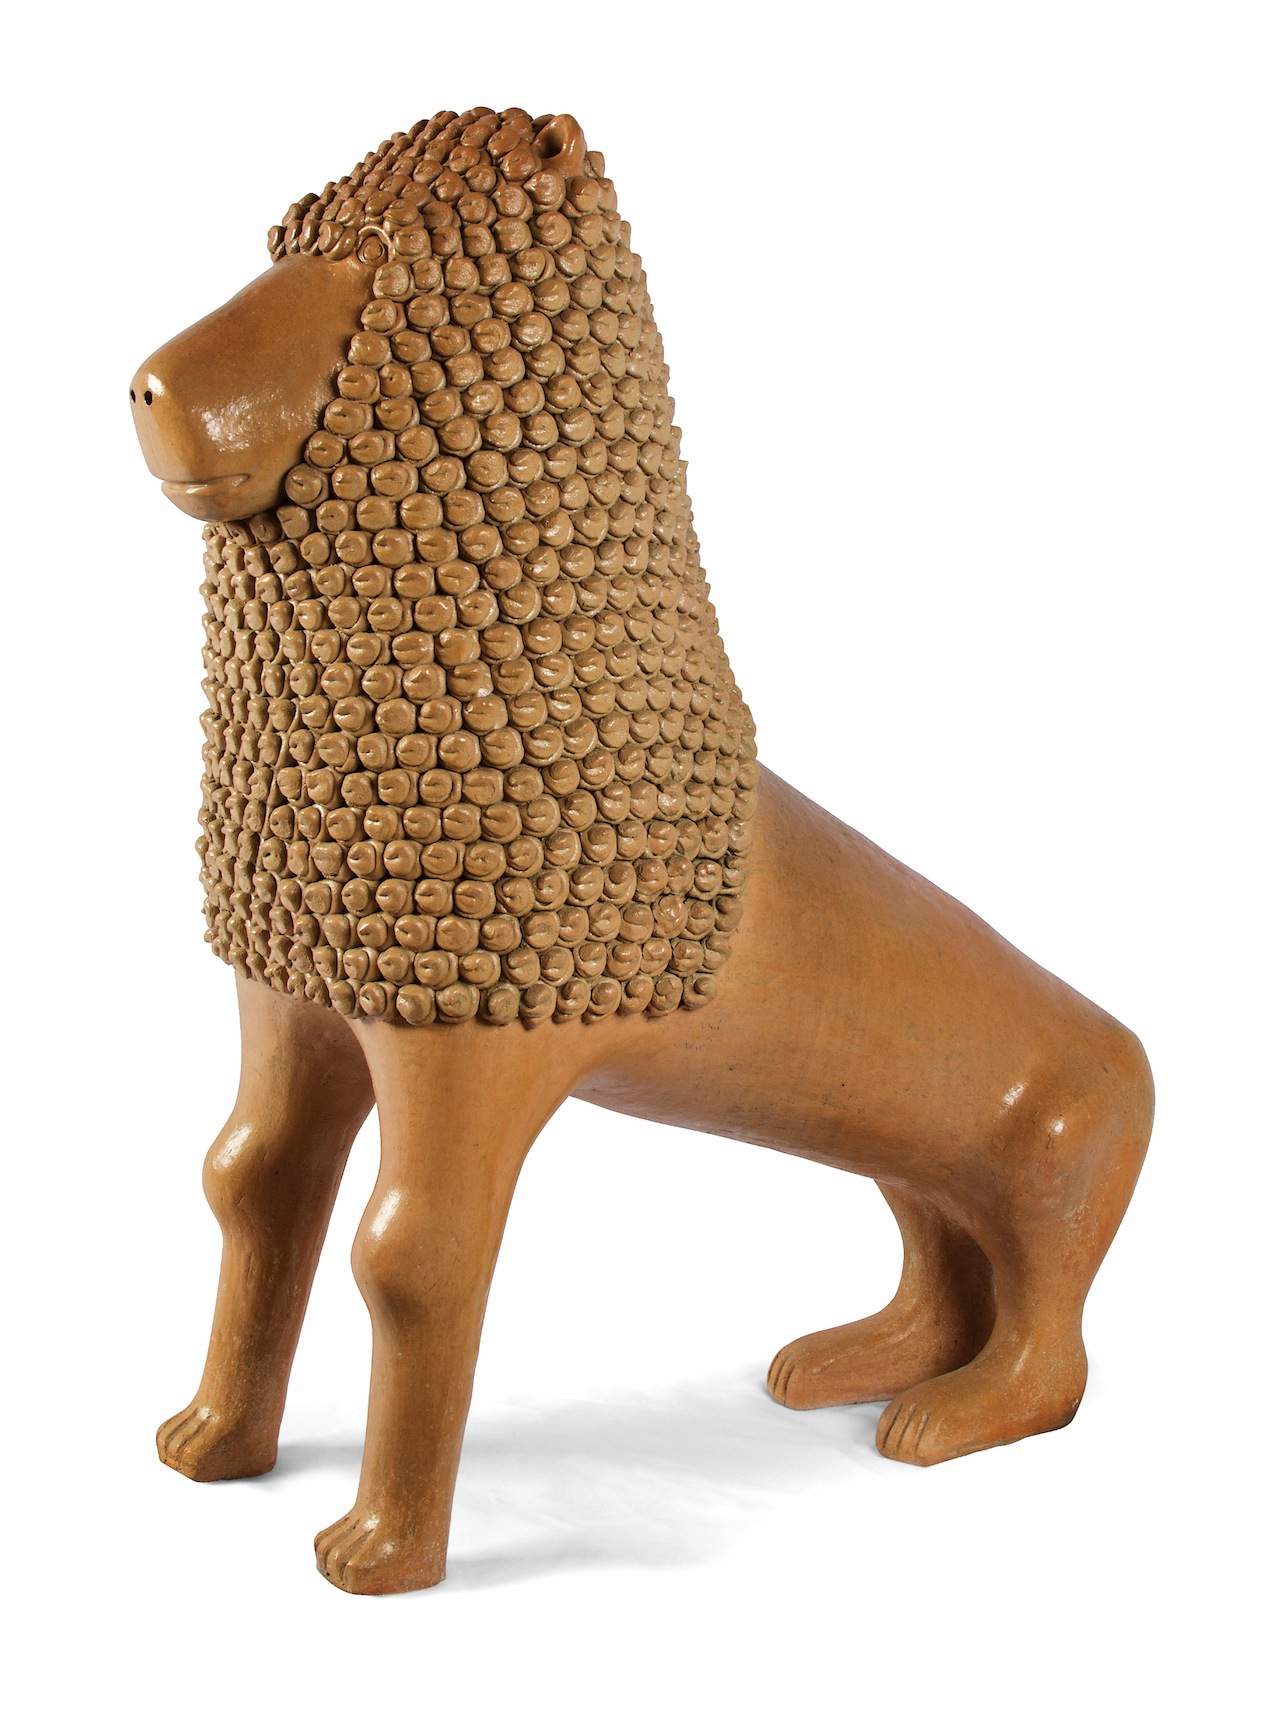 """. Manoel Gomes Da Silva """"Nuca."""" Lion, 2011. Modeled clay, smoothed, with appliqué and varnished. Tracunhaém, Pernambuco,  Brazil. Coll. Fomento Cultural Banamex, A.C. Image Courtesy of Fomento Cultural Banamex, A.C."""